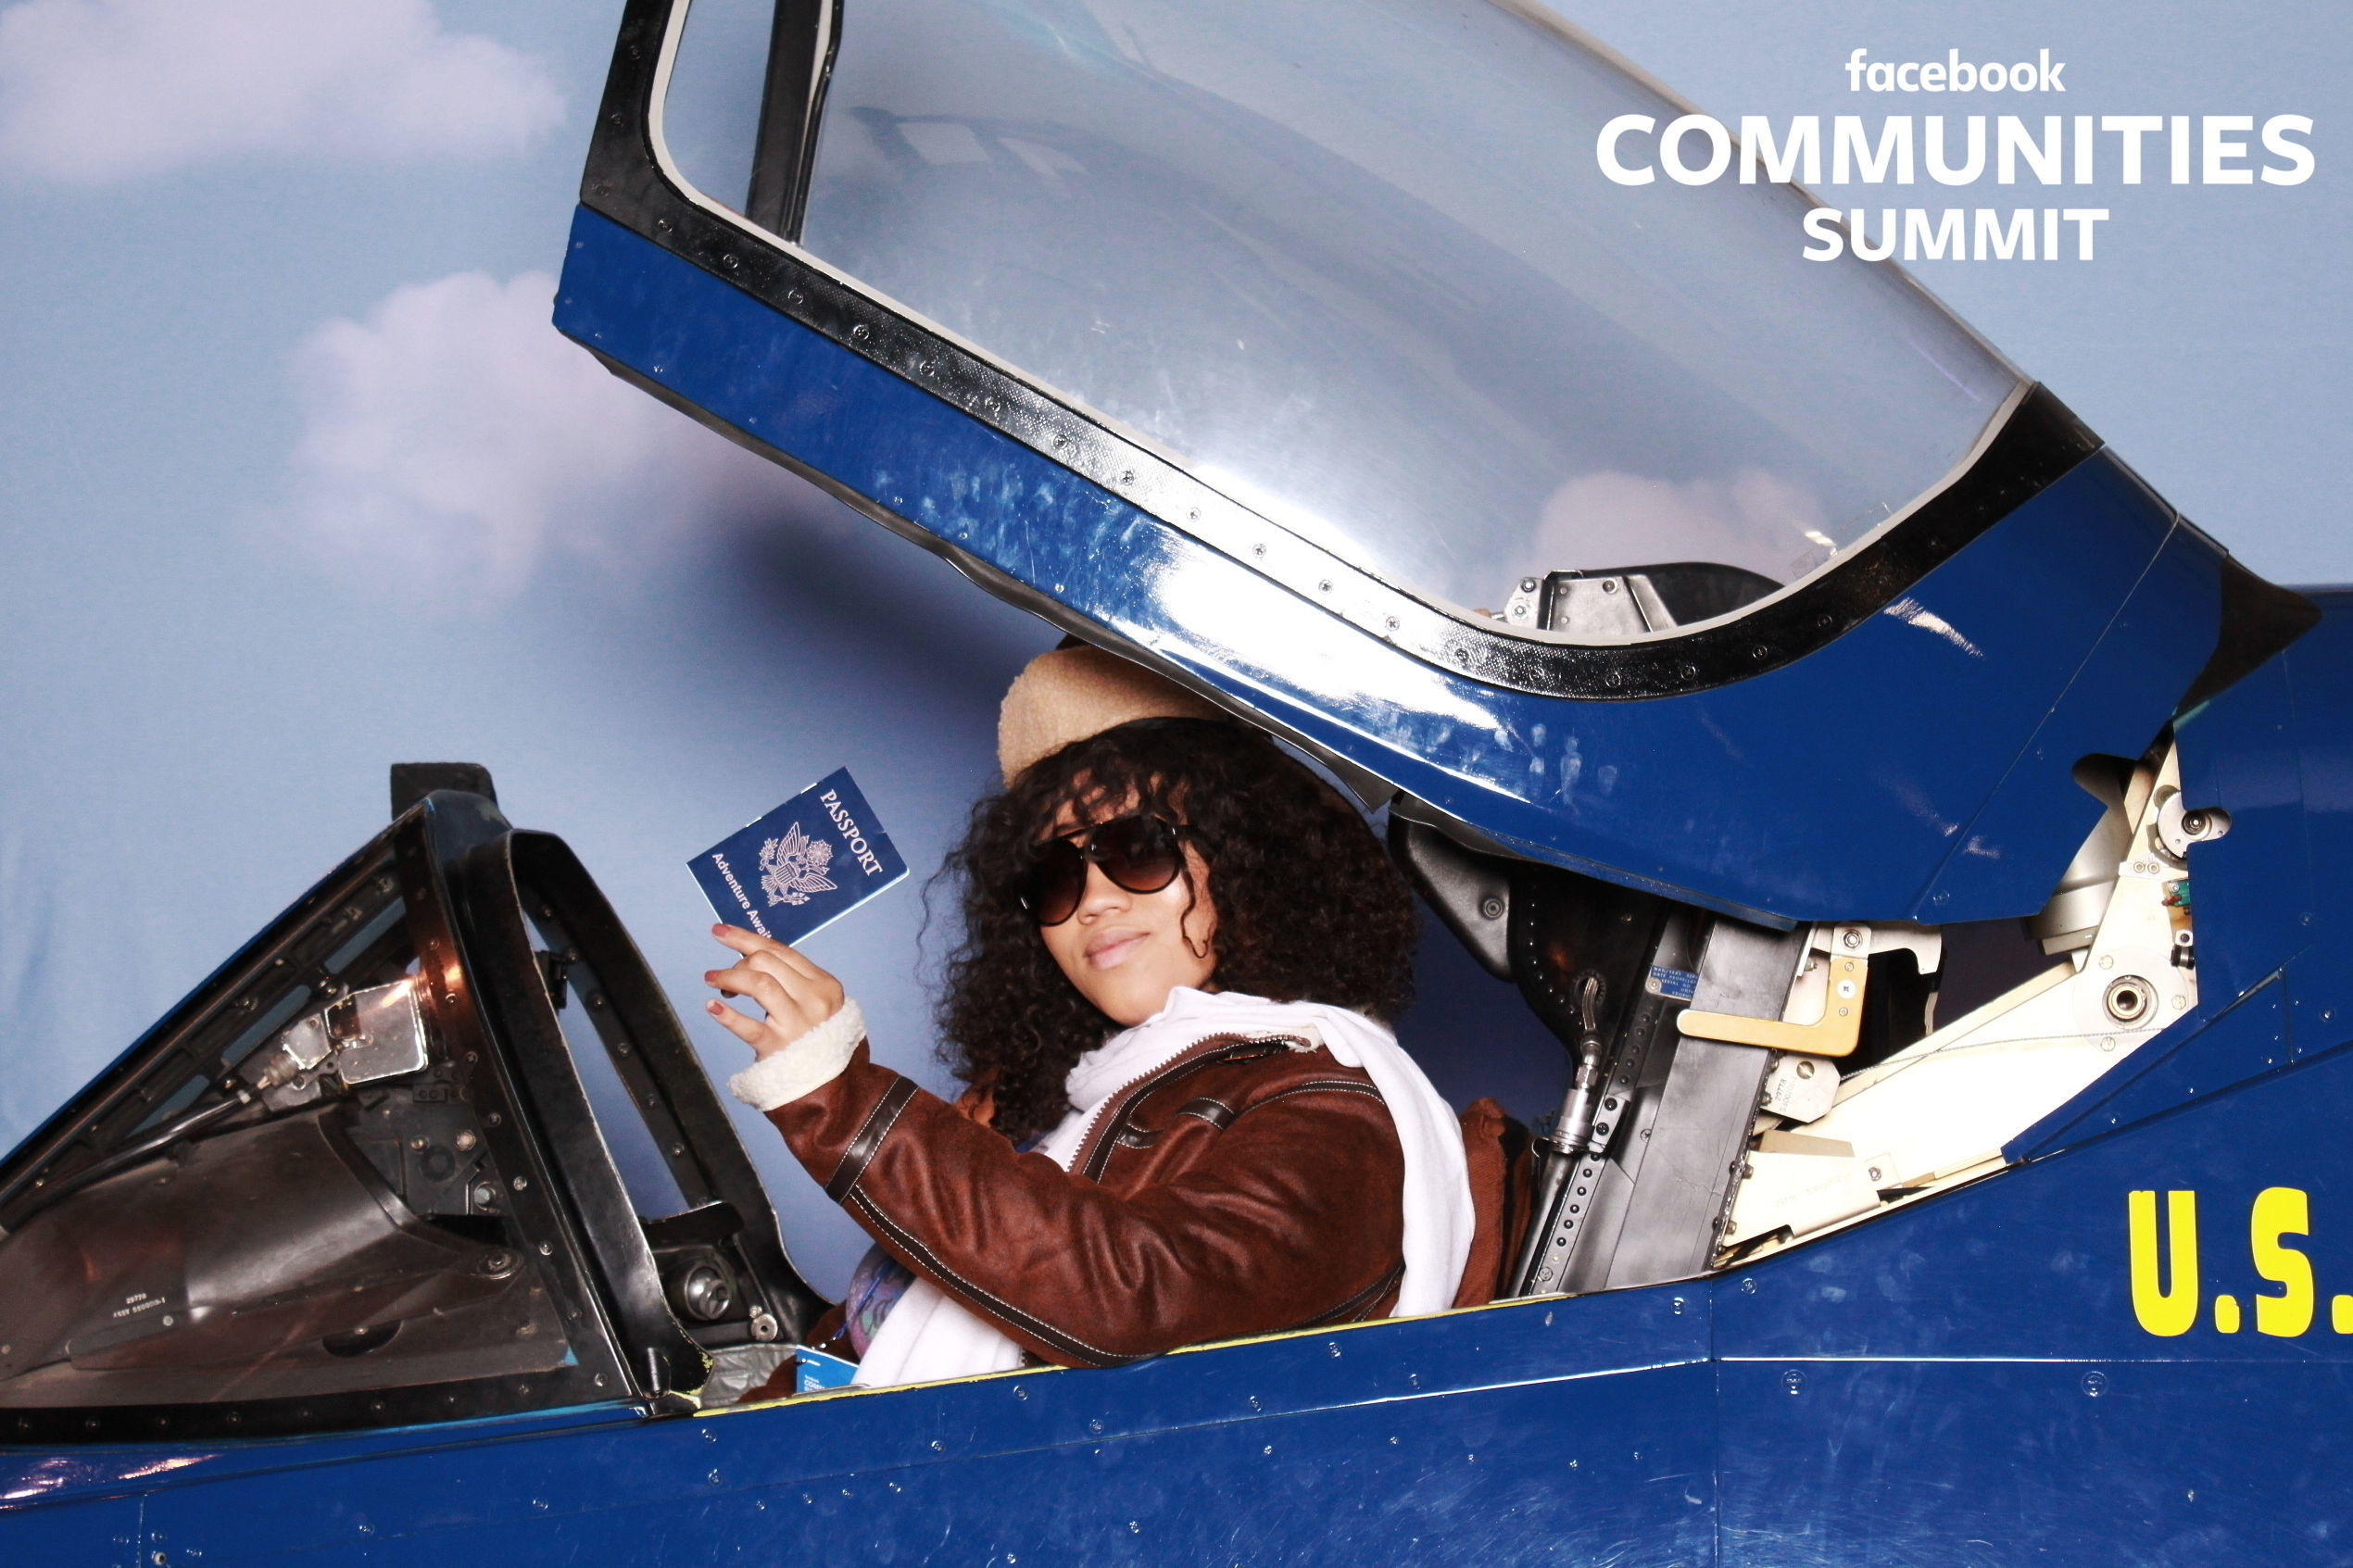 Airplane custom photo booth